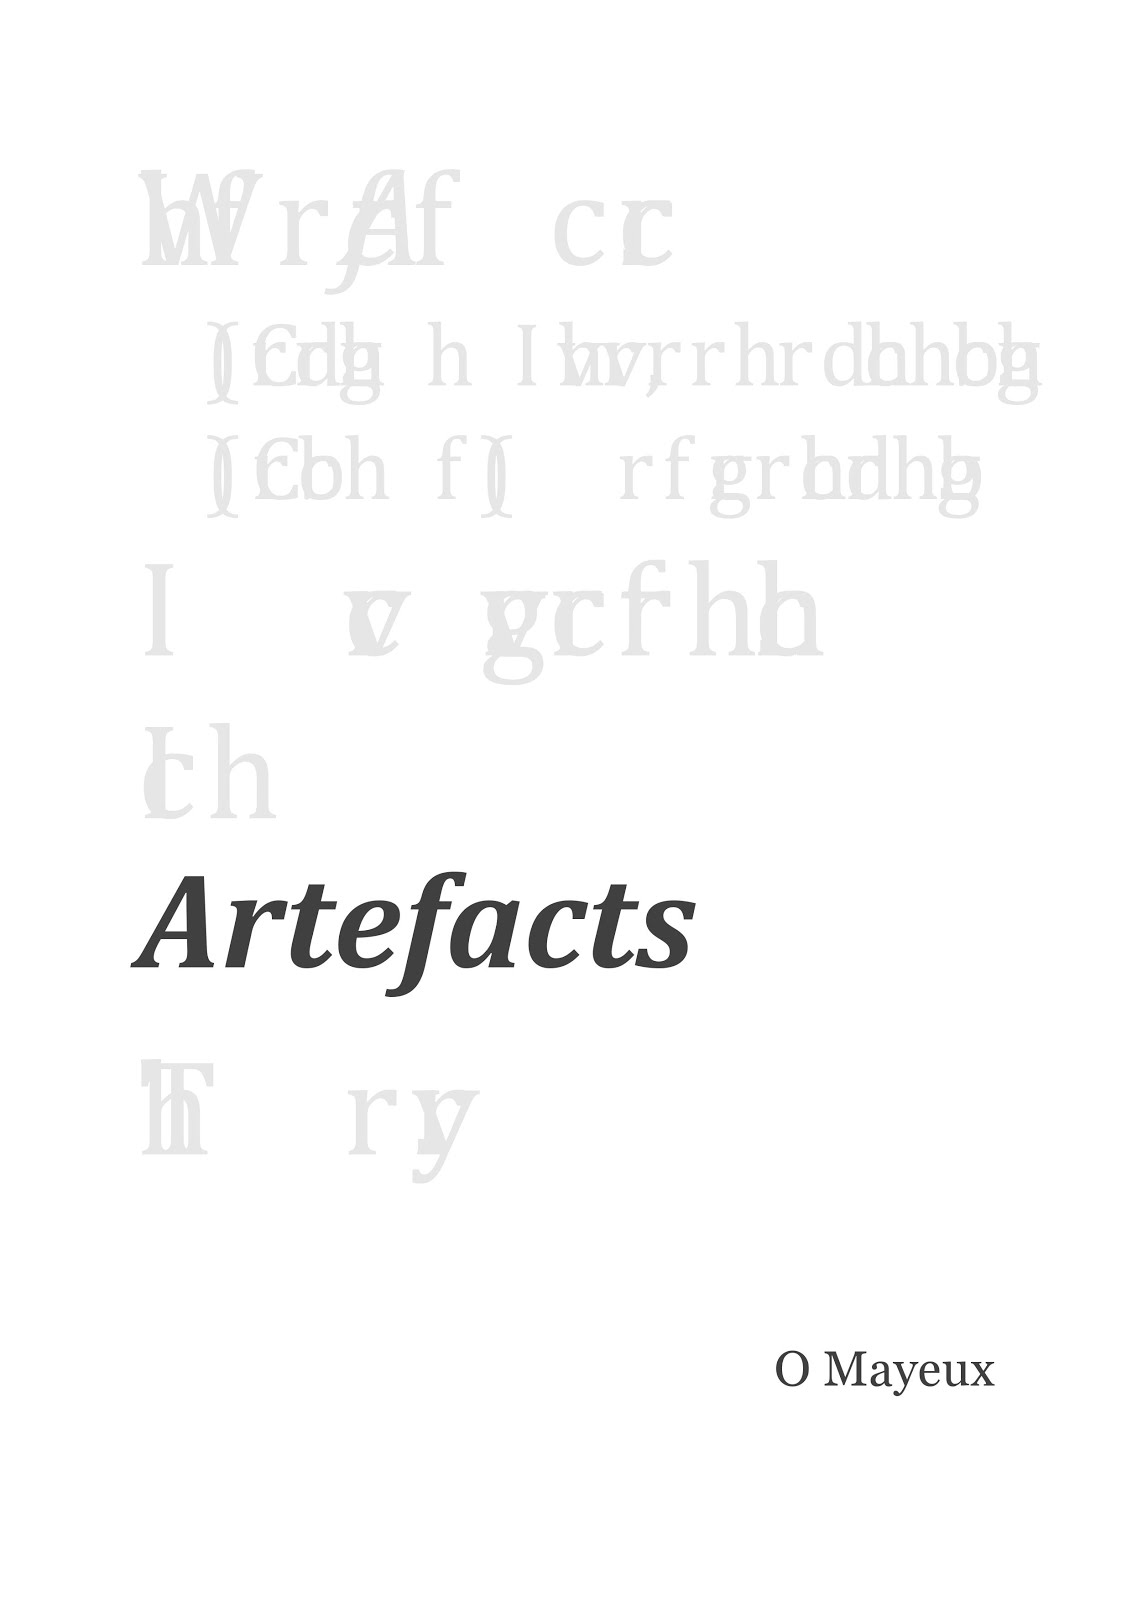 Coming Soon! Artefacts by O Mayeux